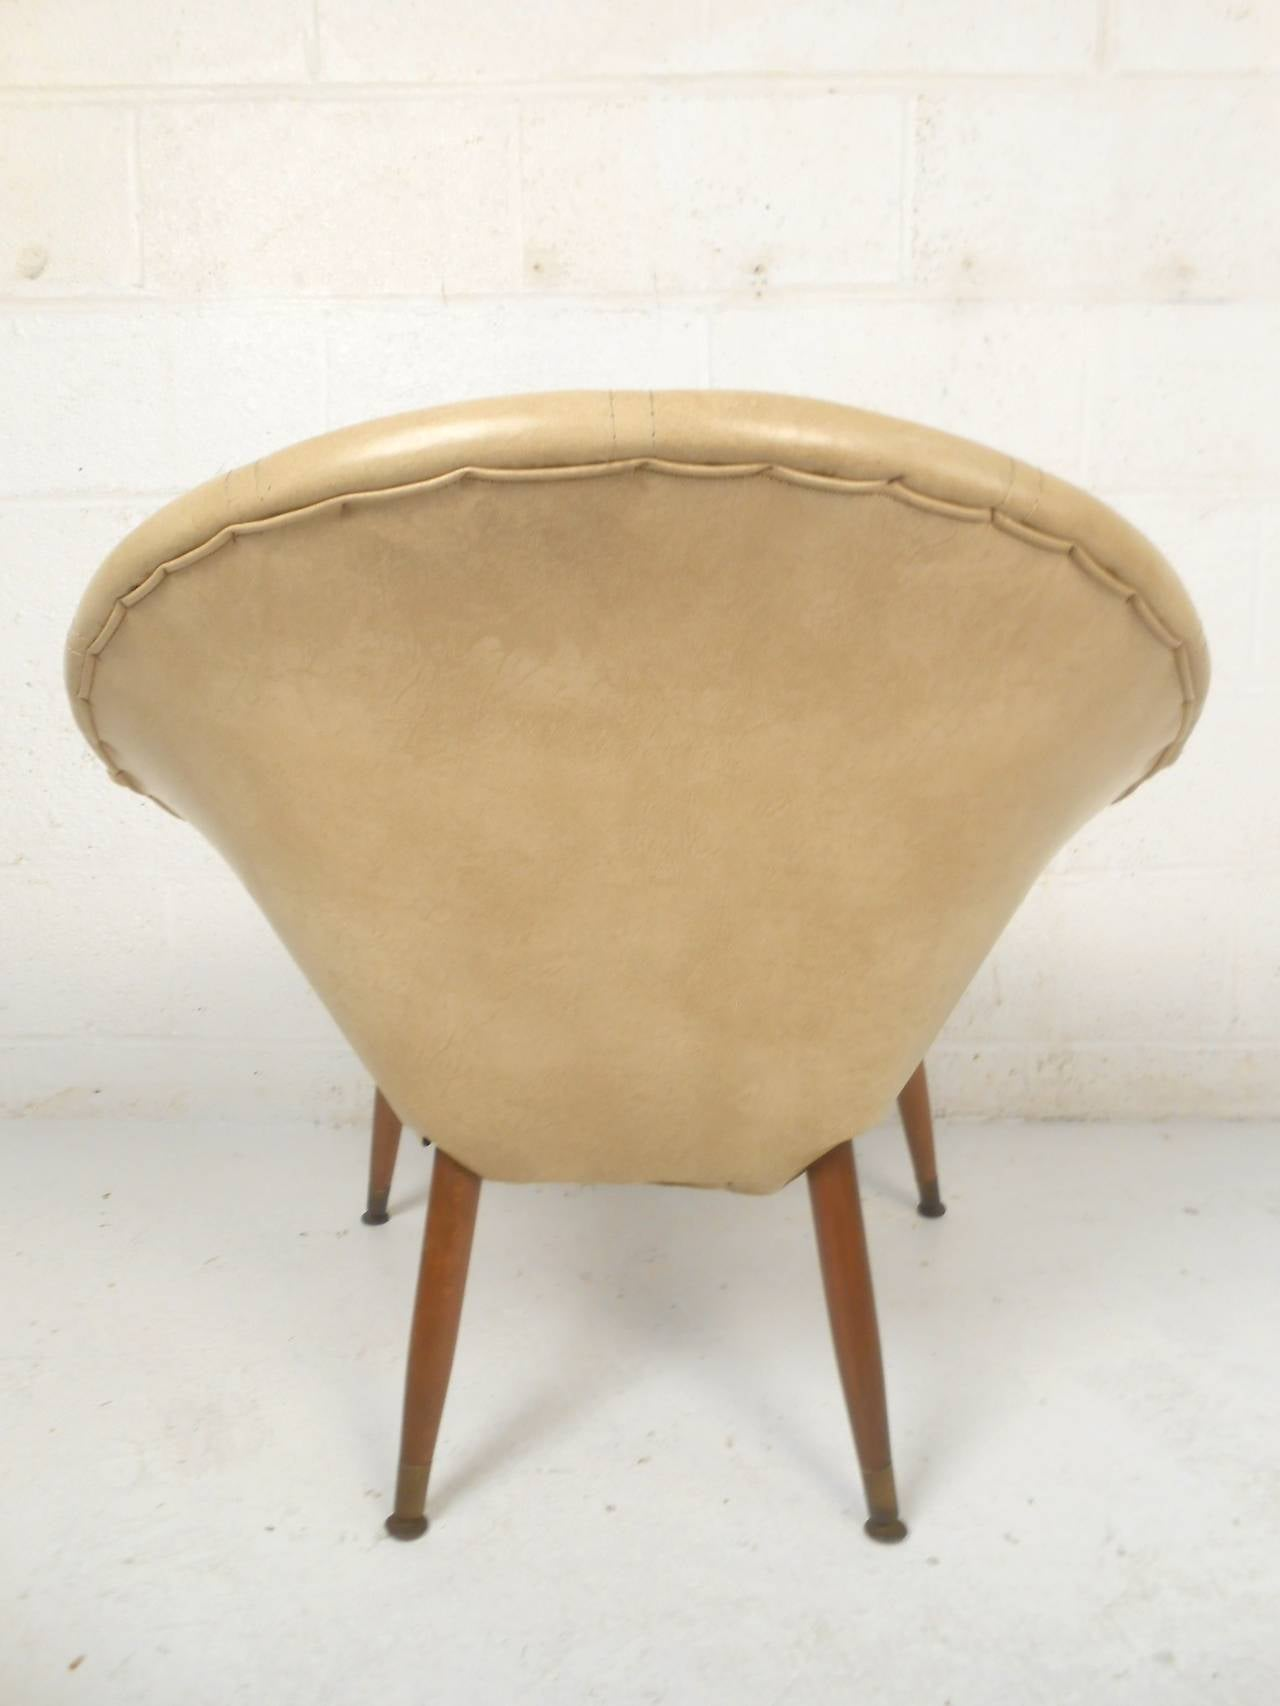 Round Midcentury Saucer Chair For Sale At 1stdibs. Full resolution‎  portraiture, nominally Width 1280 Height 1706 pixels, portraiture with #794E30.